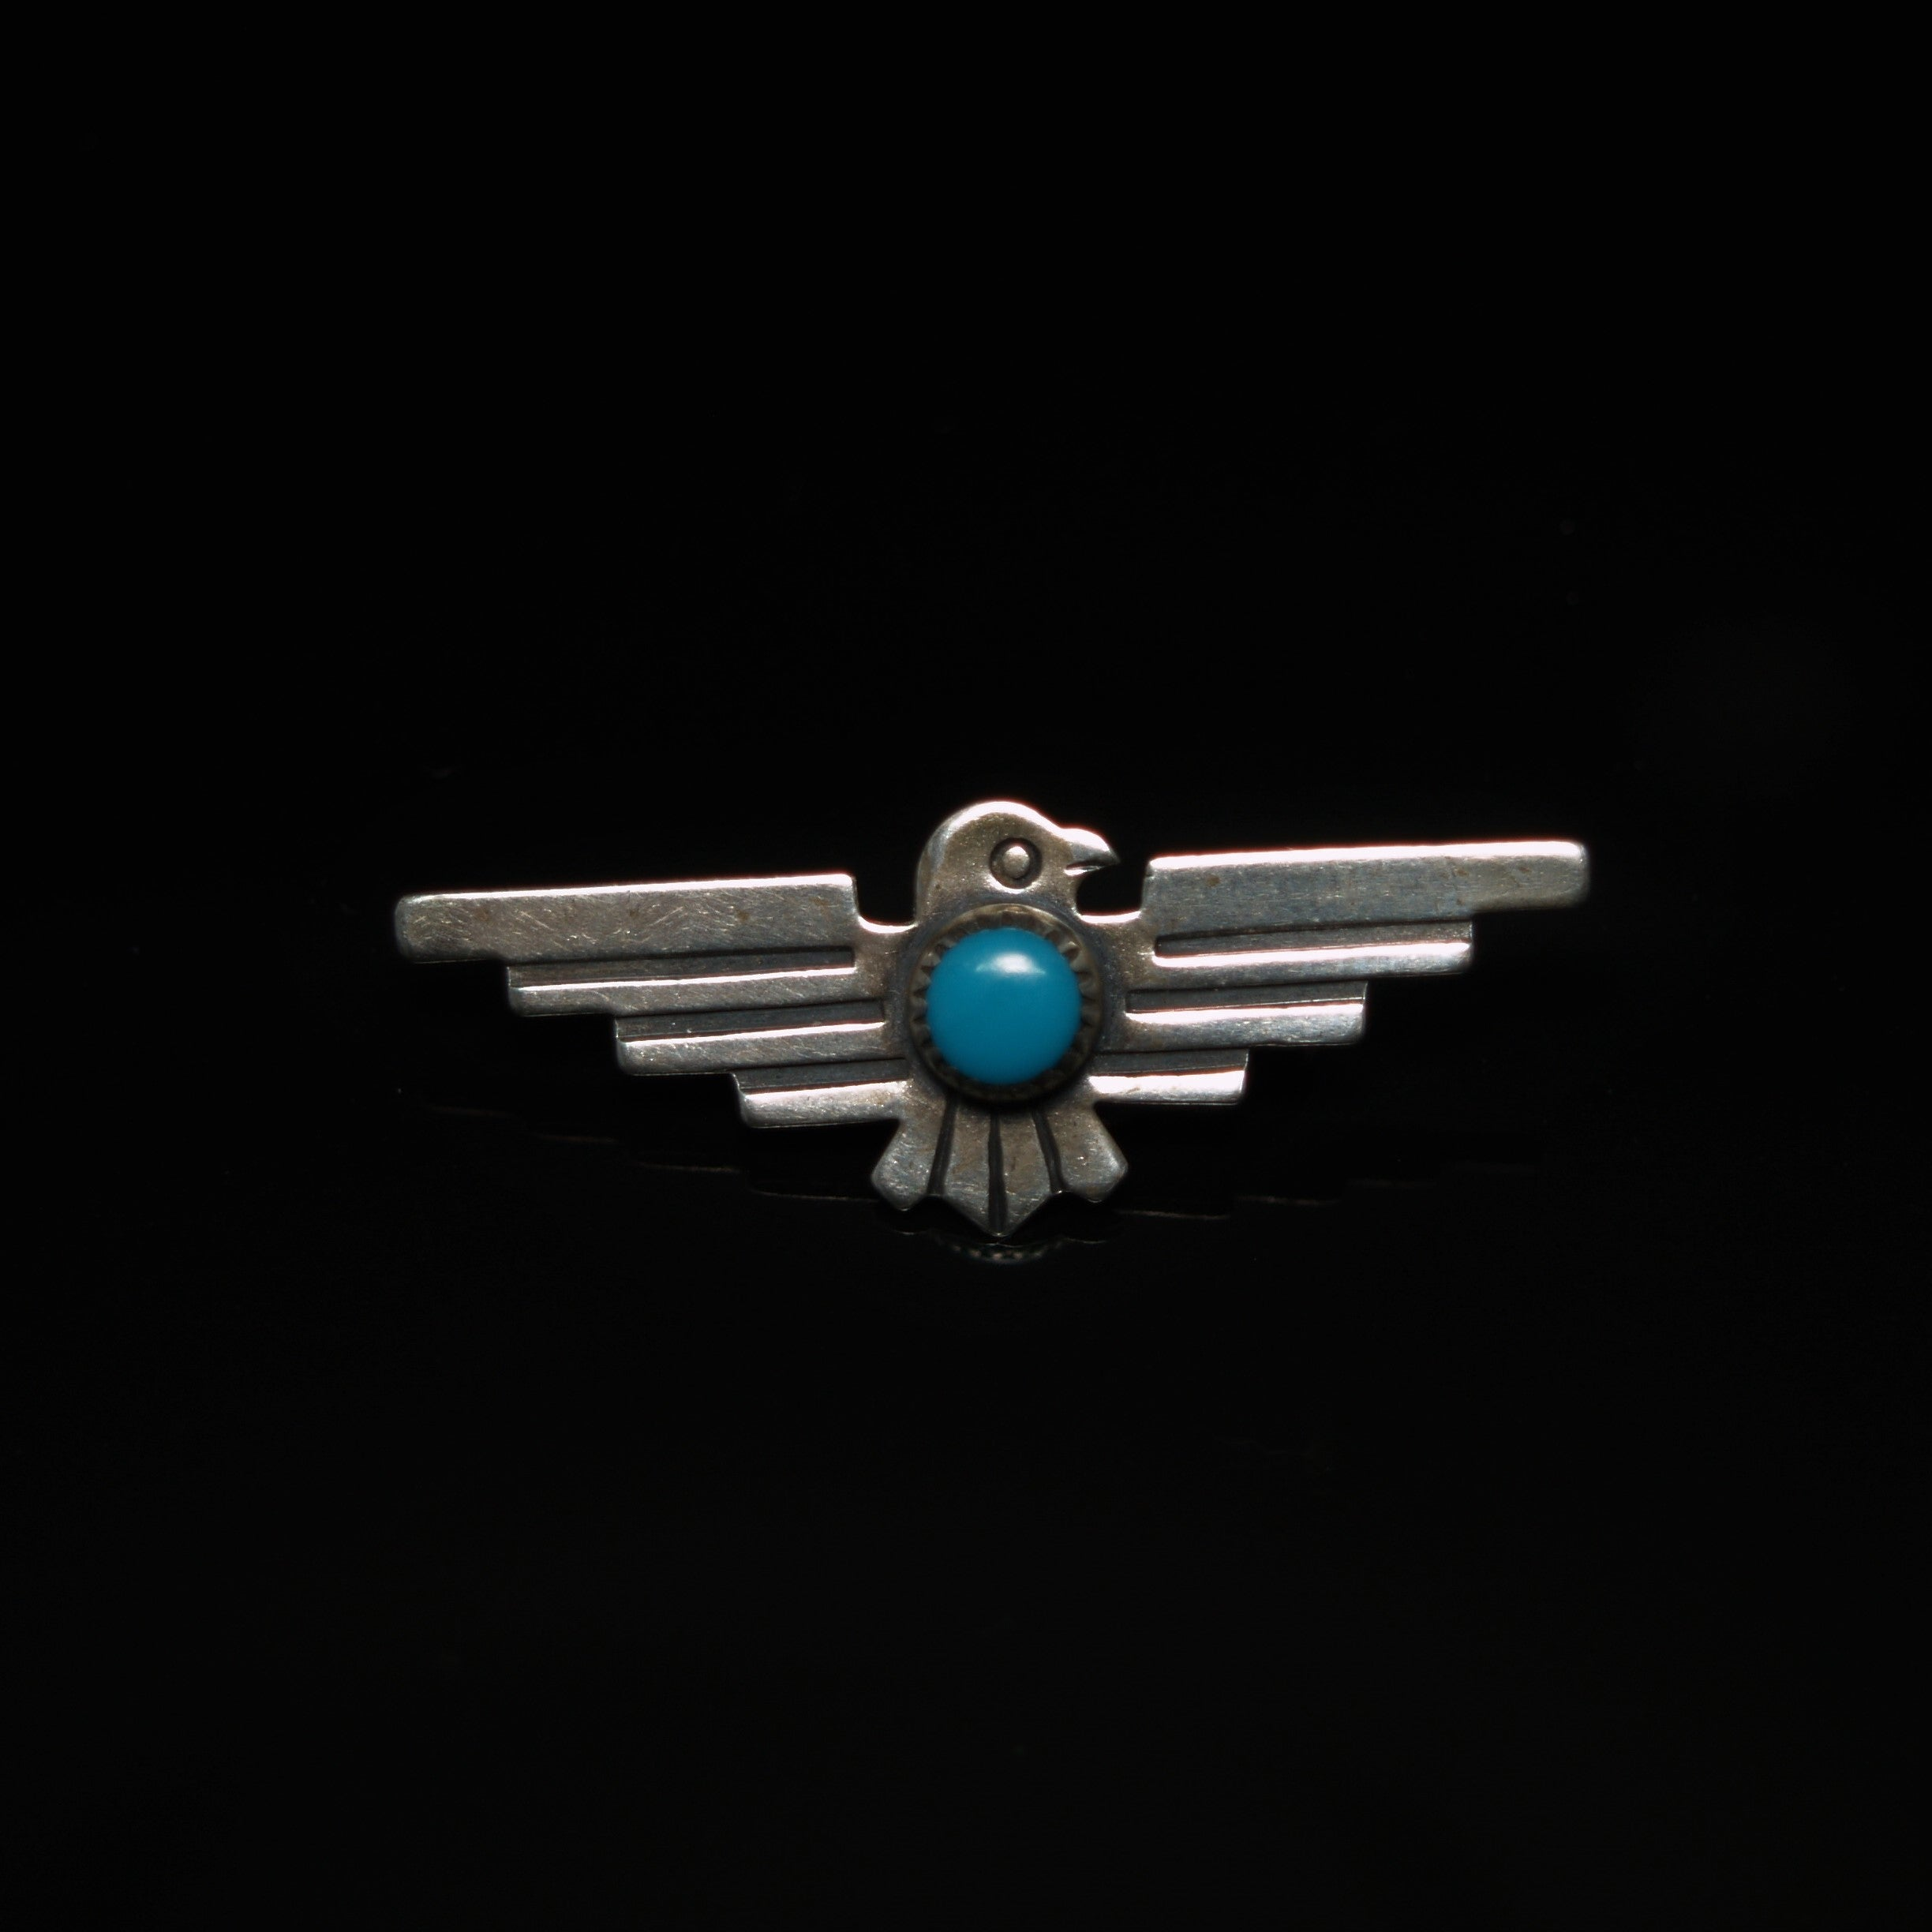 NAVAJO INDIAN SILVER & TURQUOISE THUNDERBIRD BROOCH.